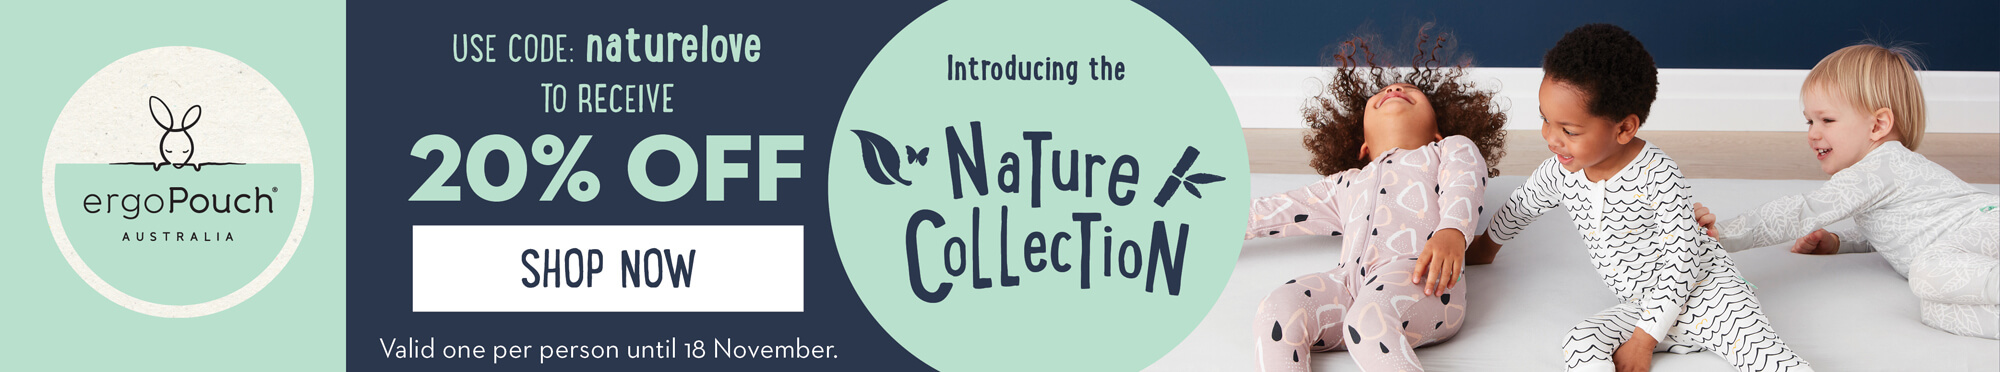 ergoPouch® Australia Nature Collection Now Available